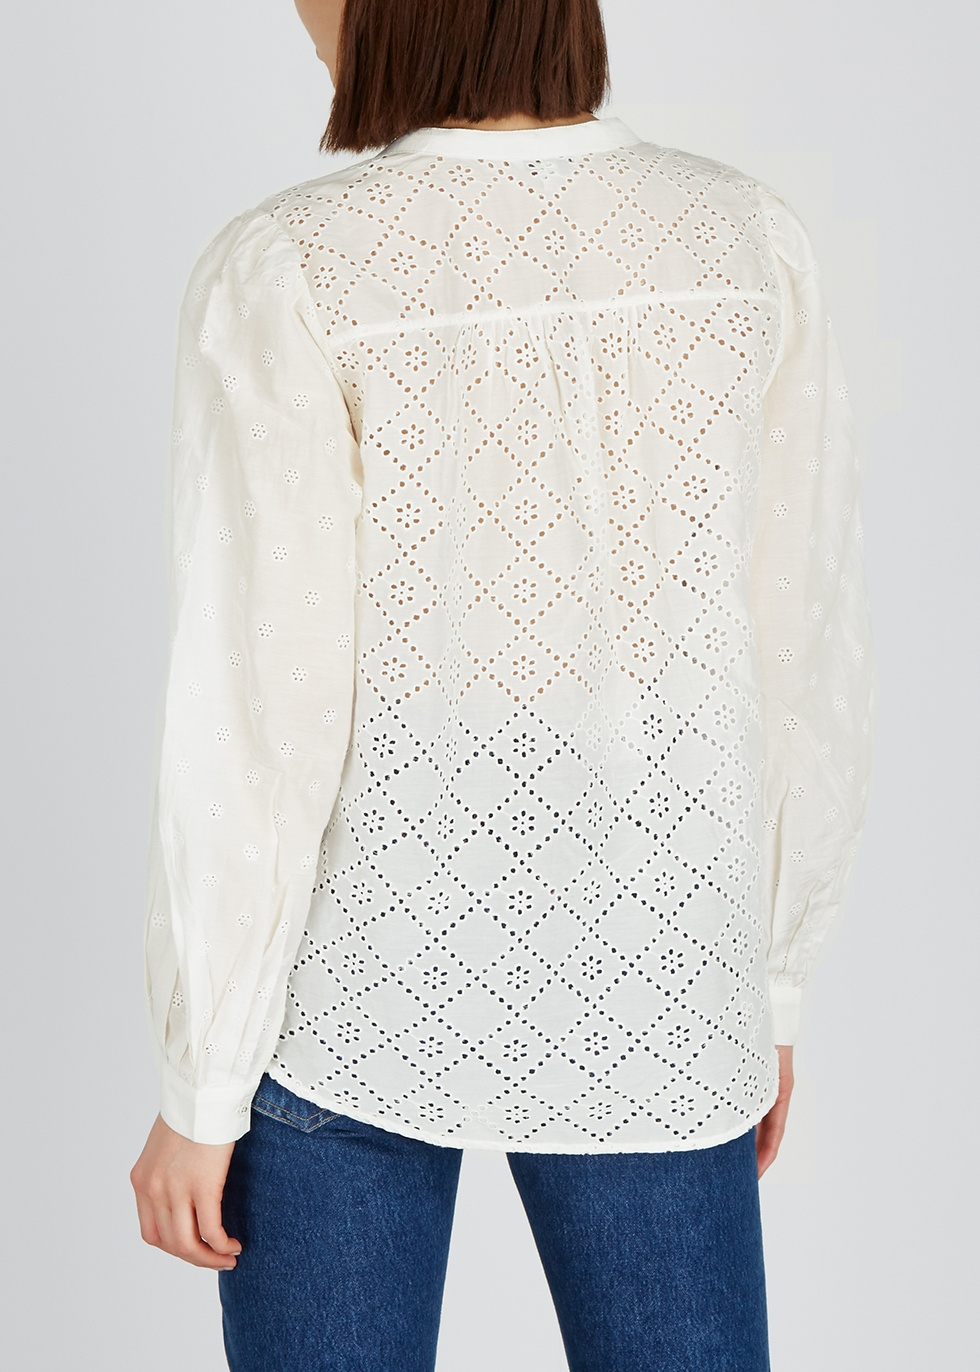 Janah broderie anglaise blouse - Joie